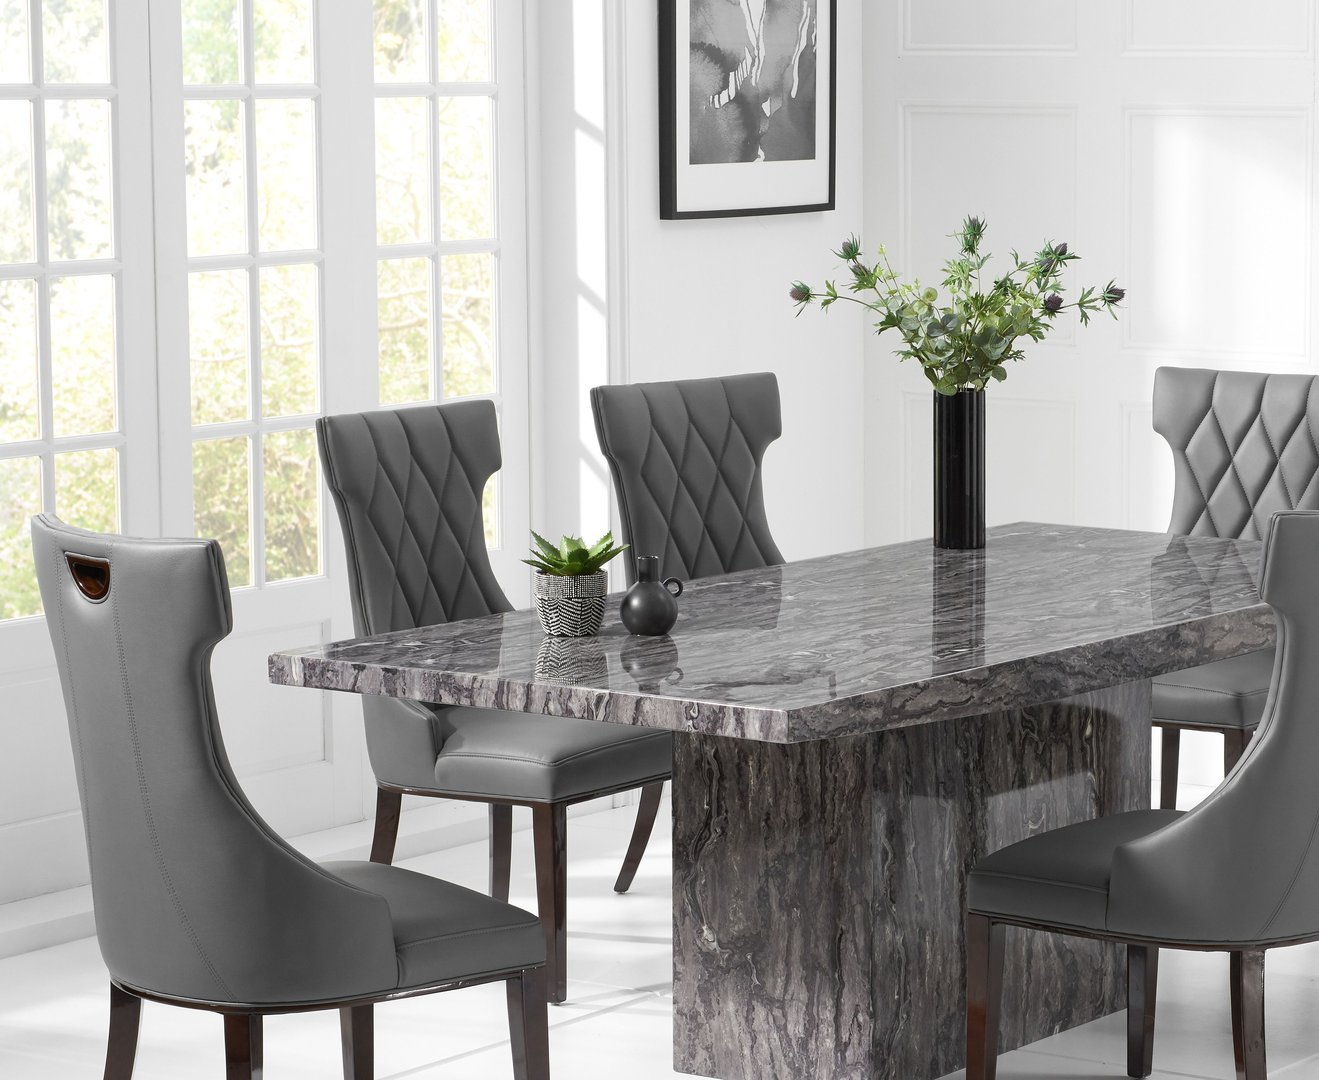 6 Seater Dining Table And Chairs Modern